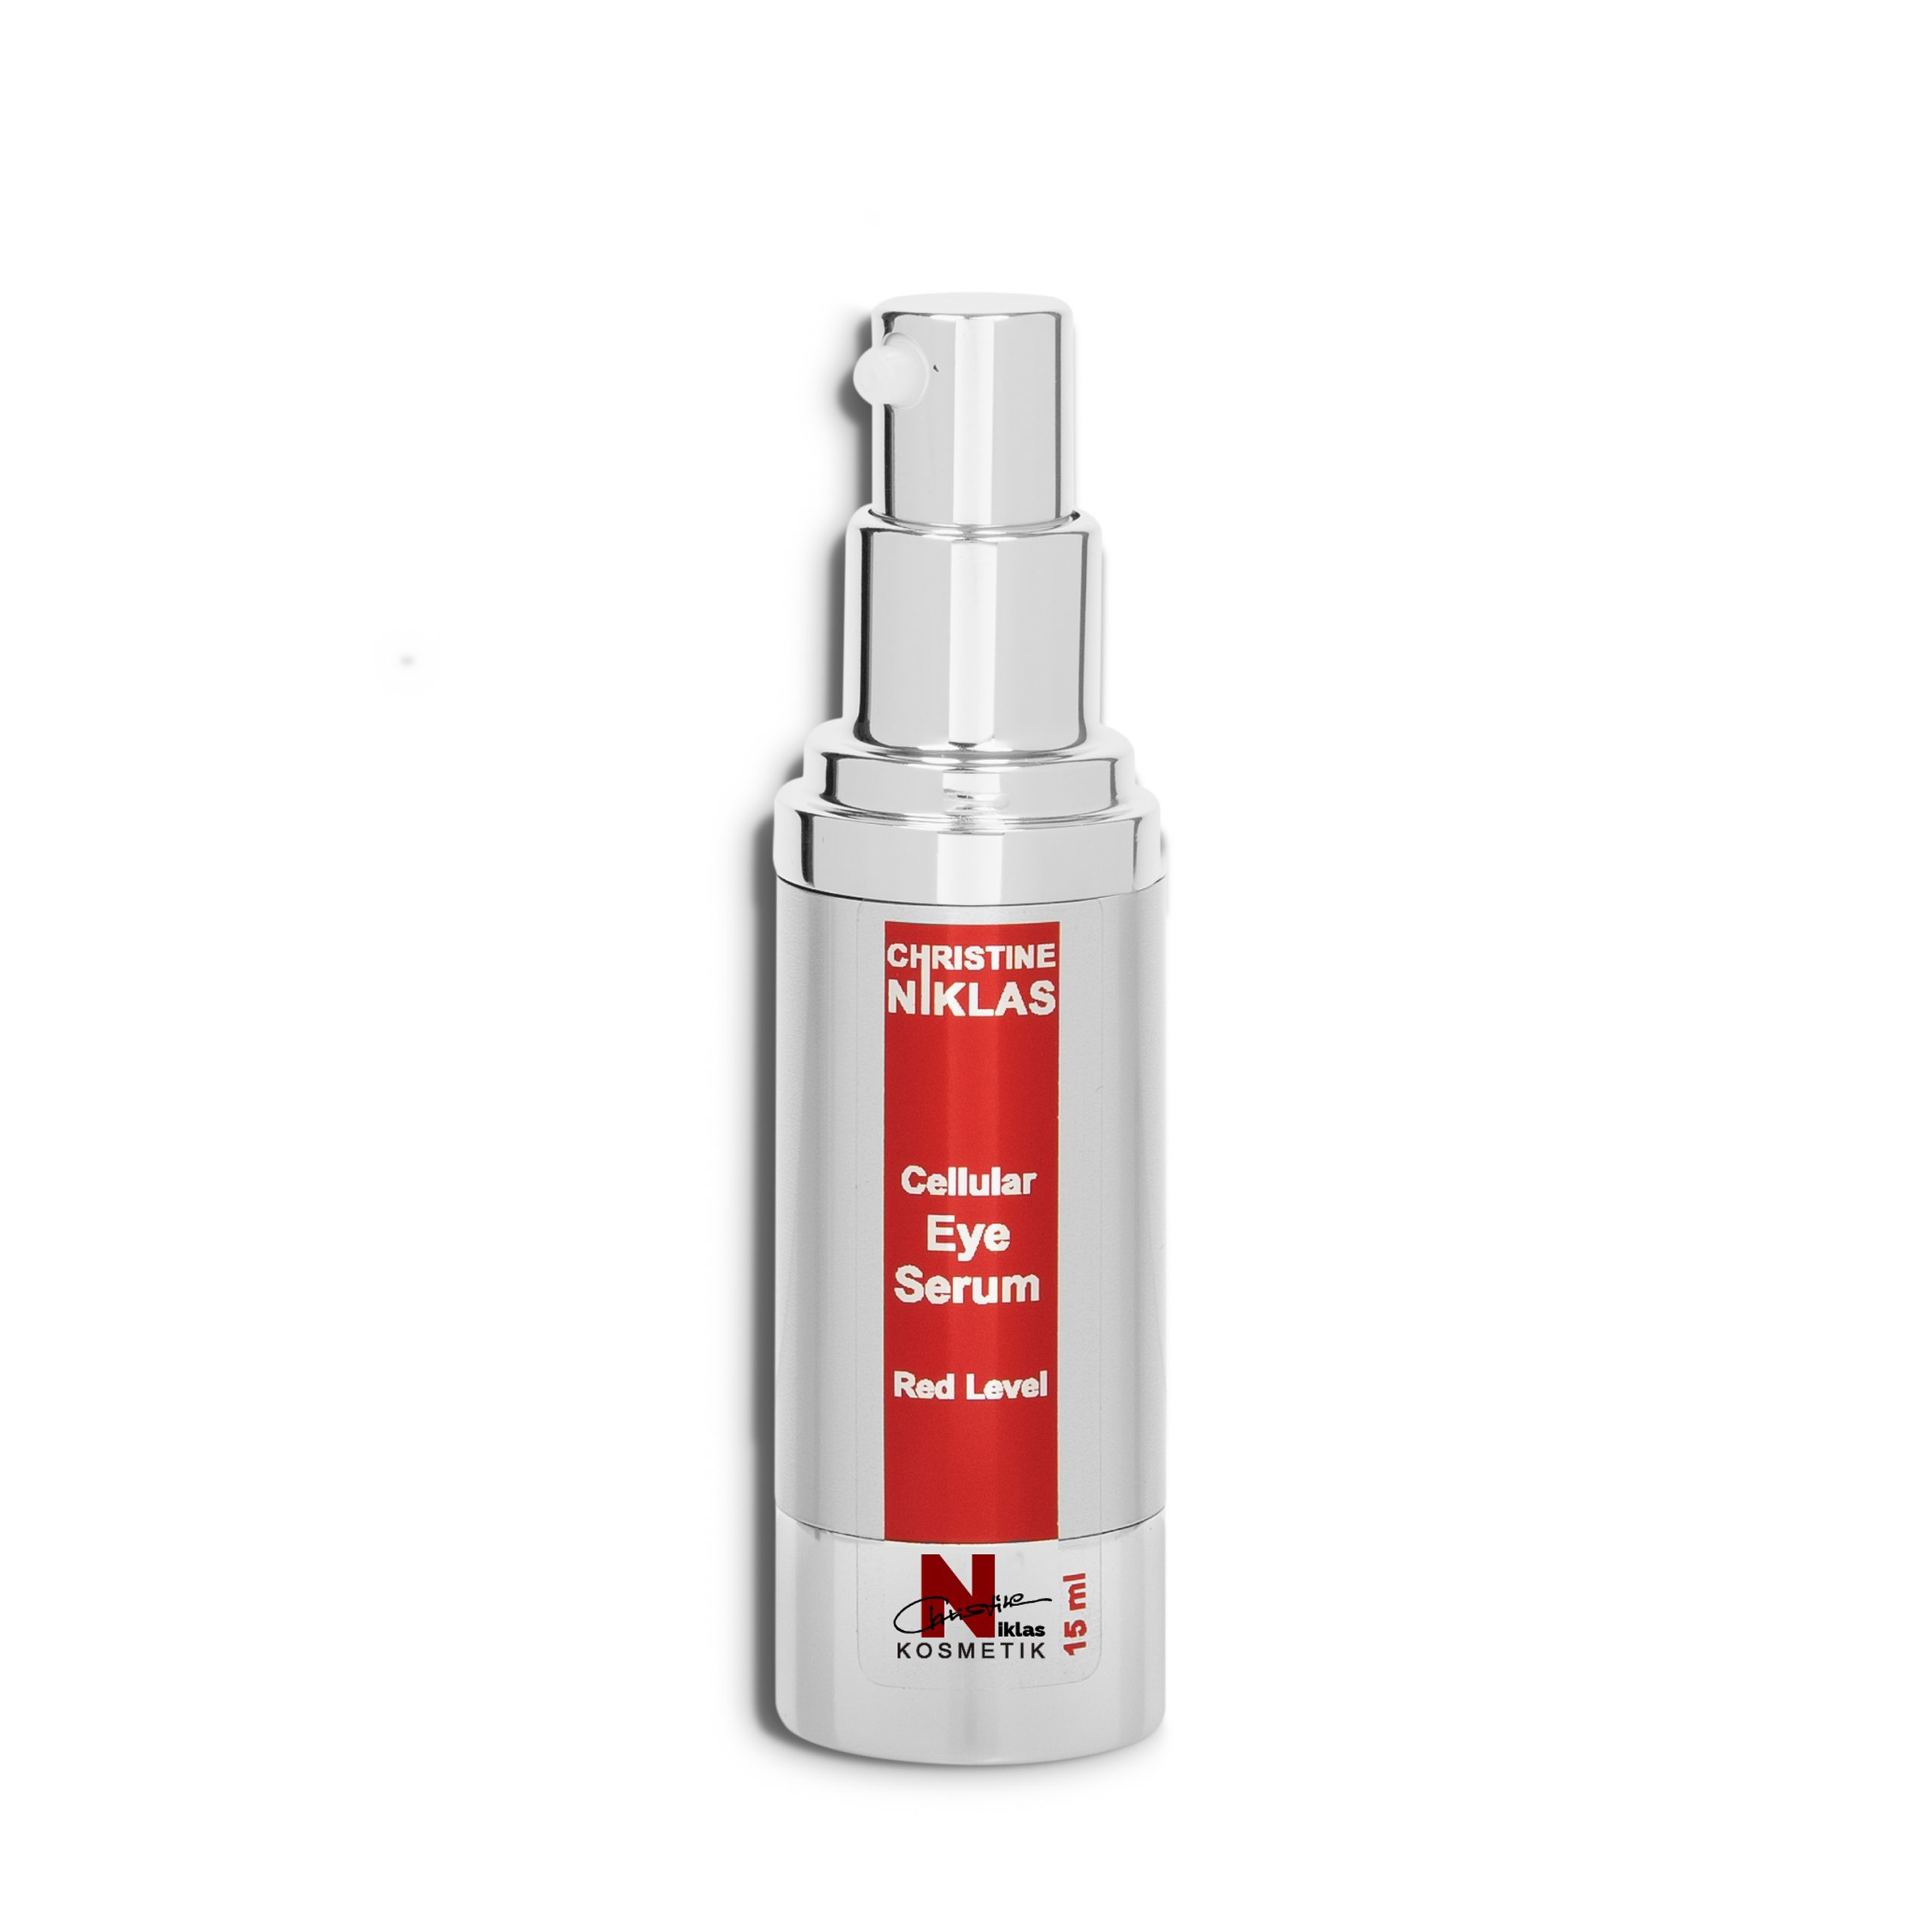 Cellular Eye Serum Red Level